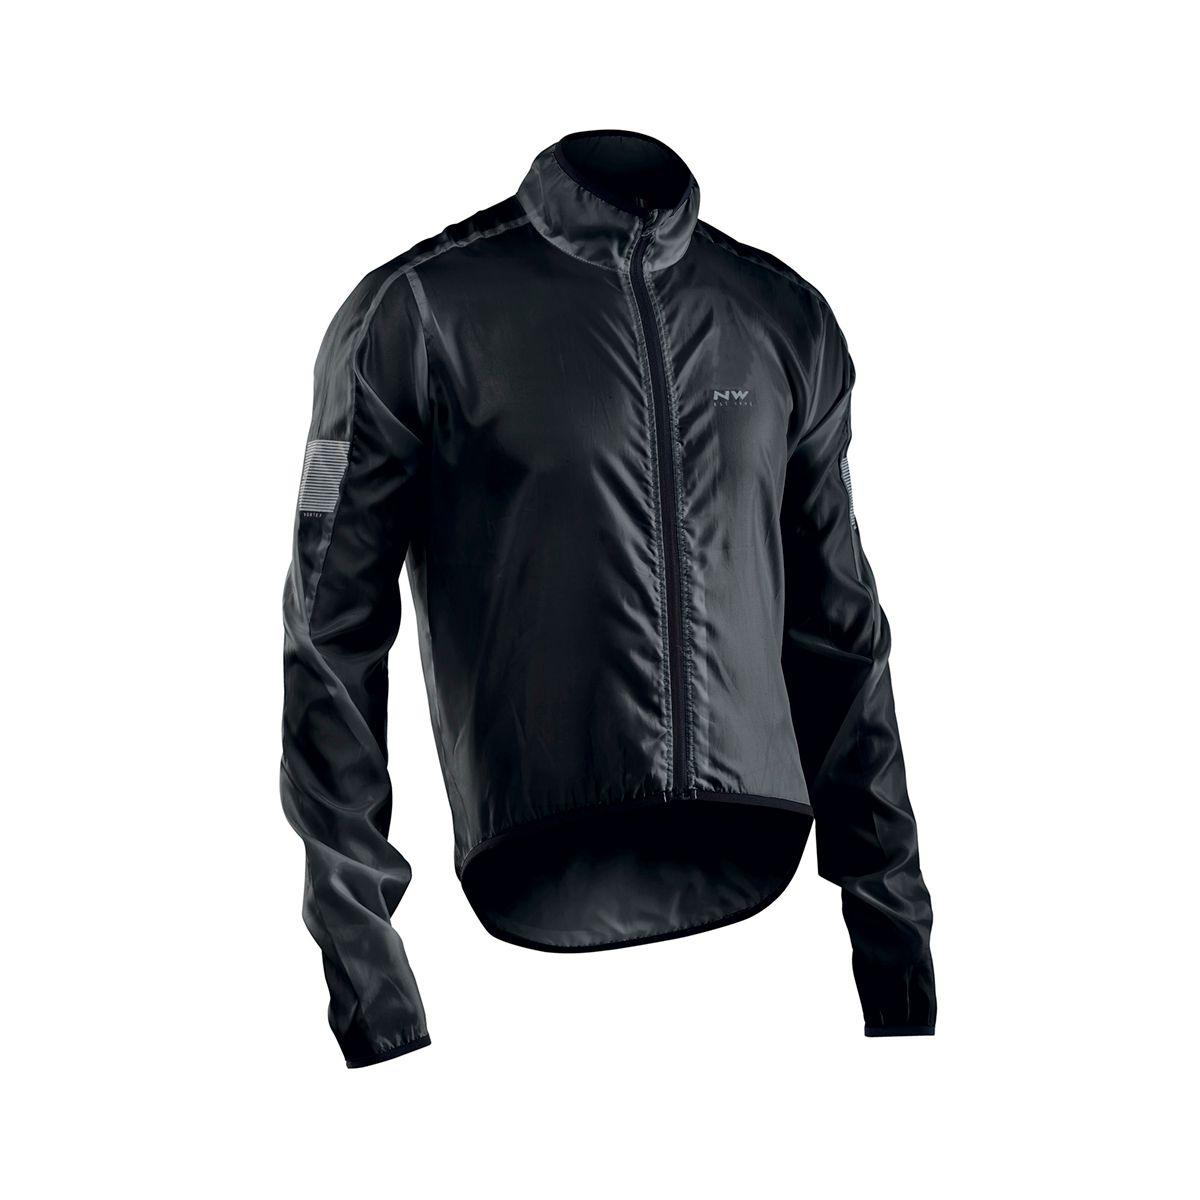 VORTEX JACKET windproof jacket